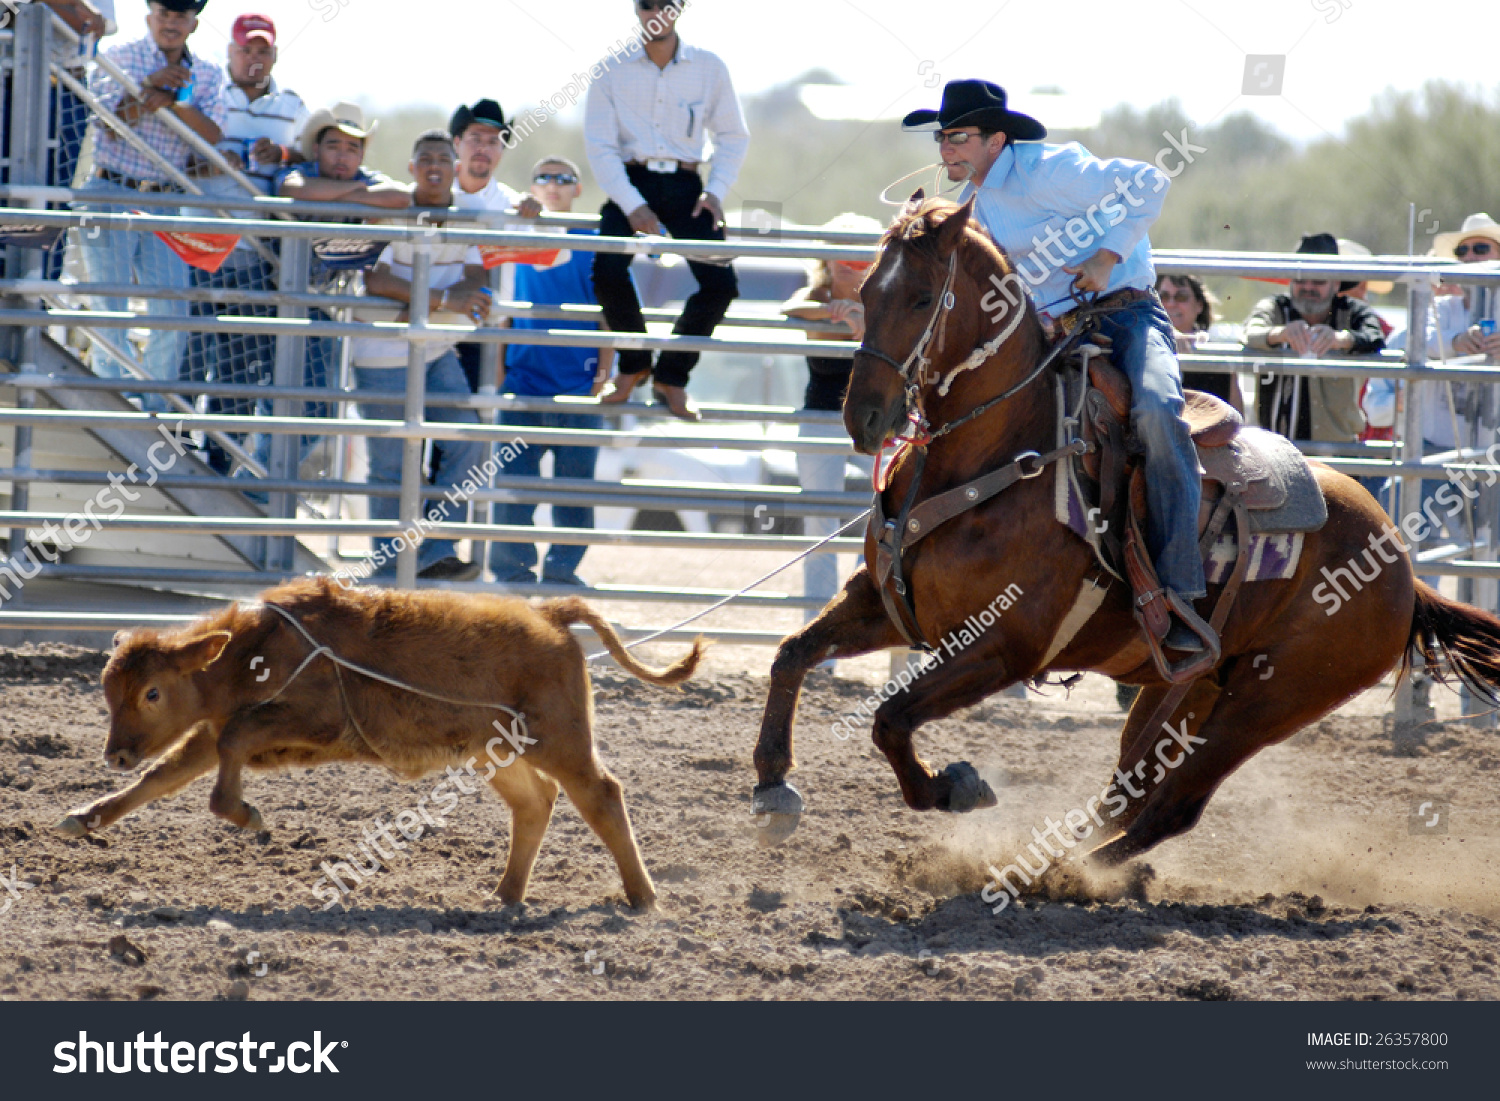 Apache Junction Az February 28 Competitor Stock Photo